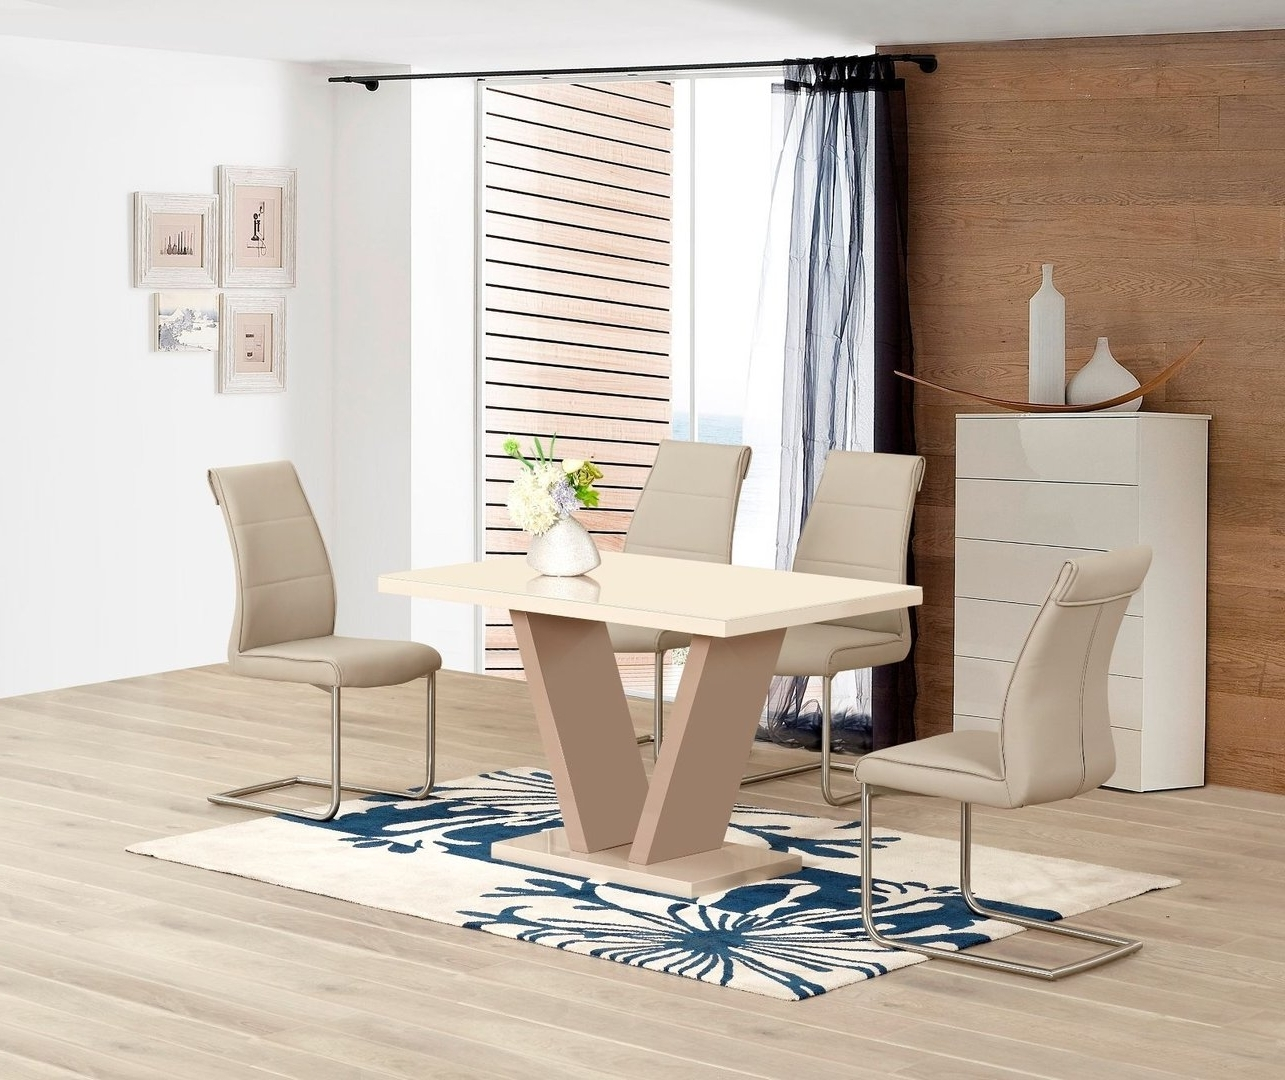 Most Recently Released Cream High Gloss Dining Table And 4 Taupe Chairs – Homegenies Throughout Cream High Gloss Dining Tables (View 7 of 25)